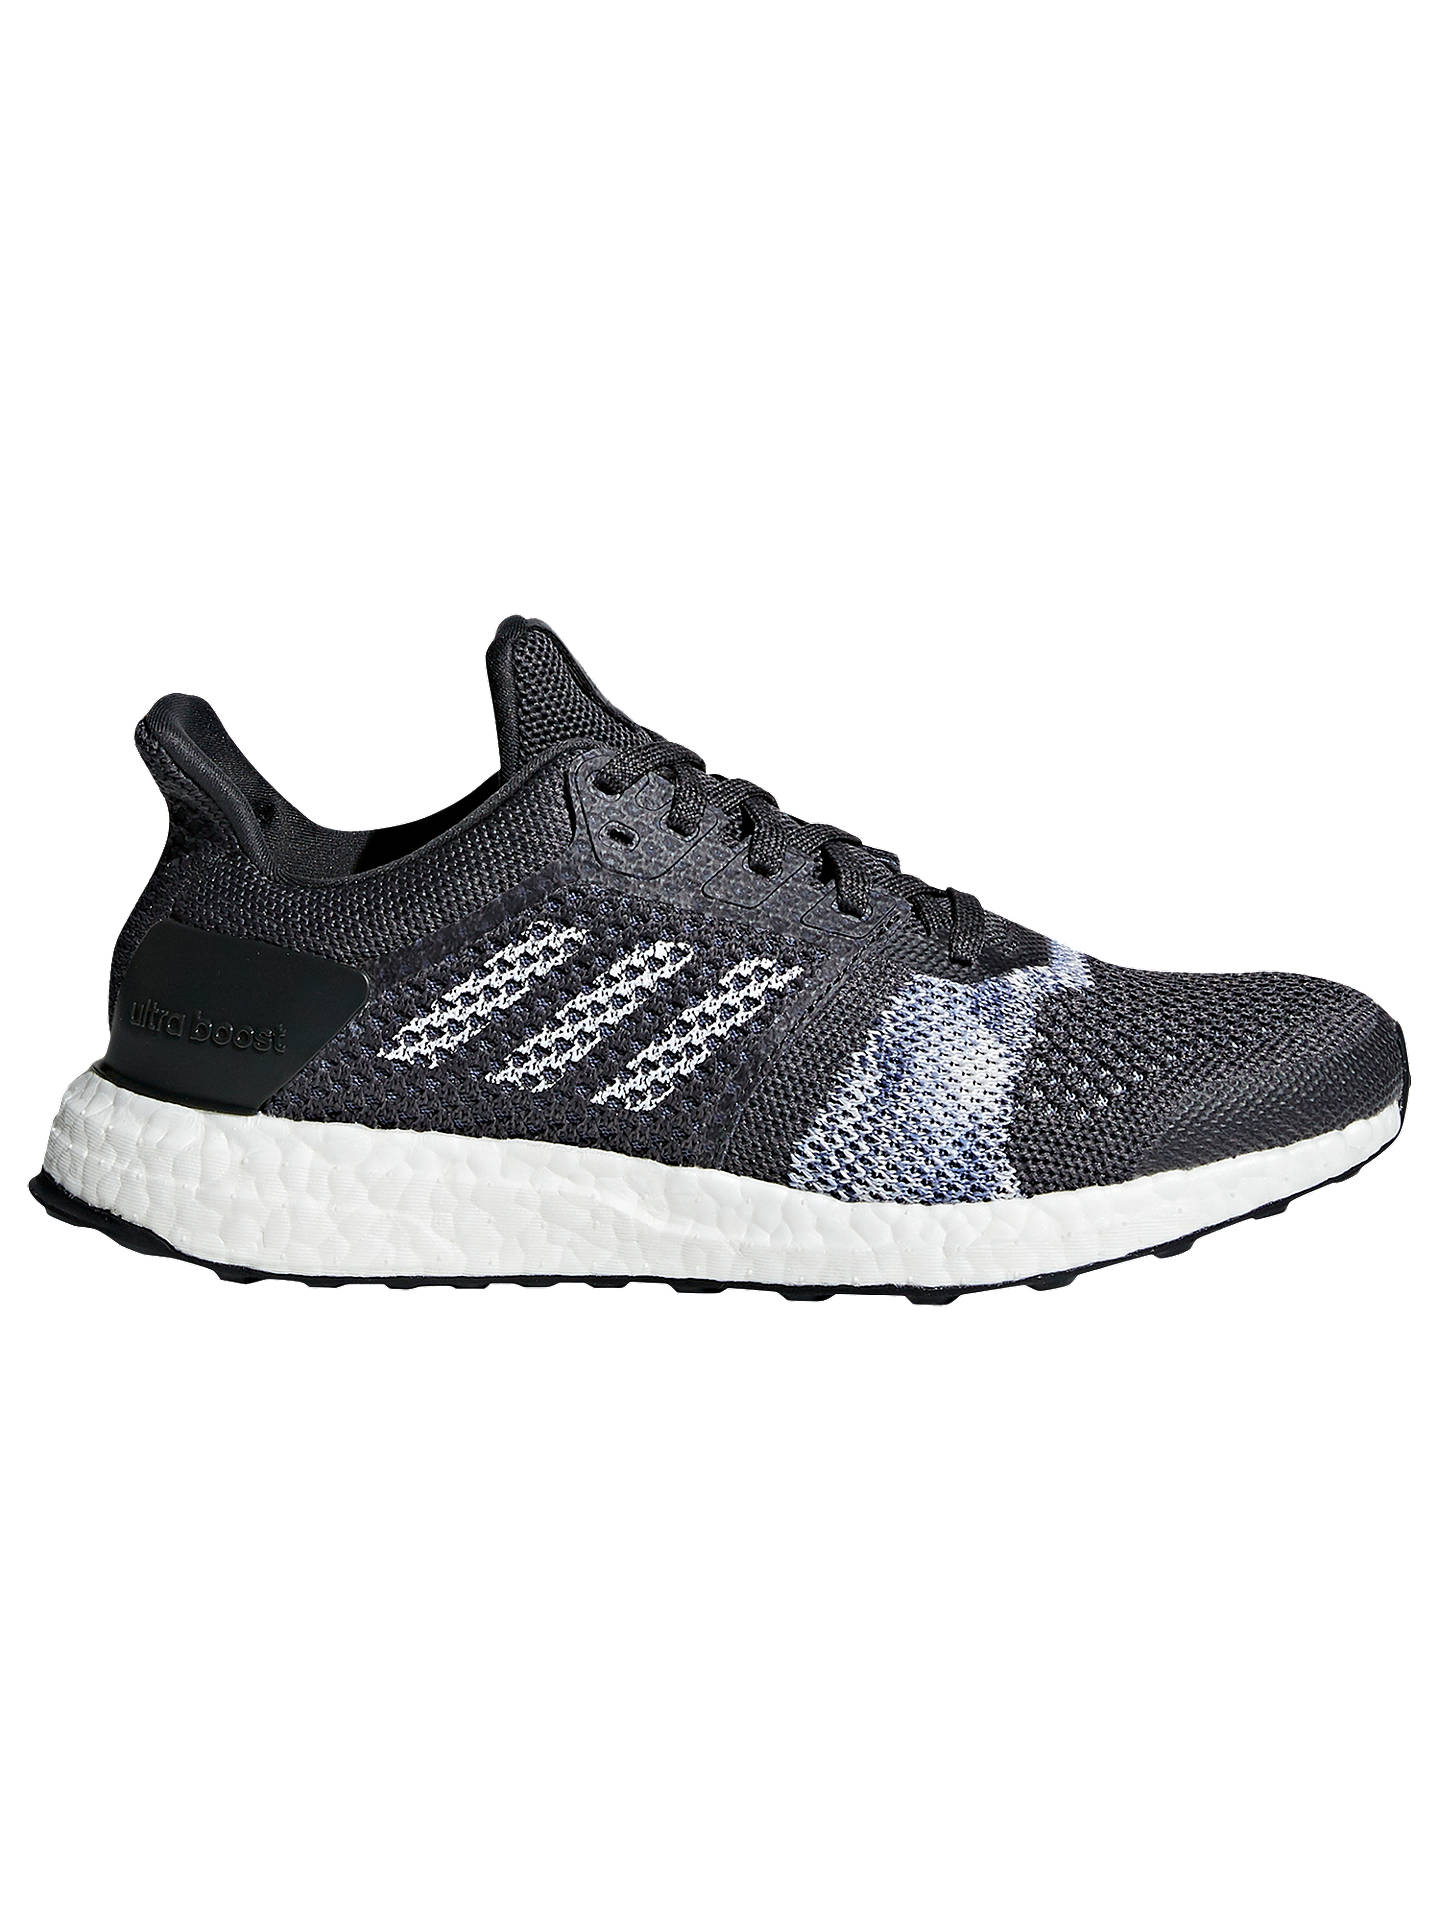 419c55e01 Buy adidas UltraBOOST Stability Women s Running Shoes